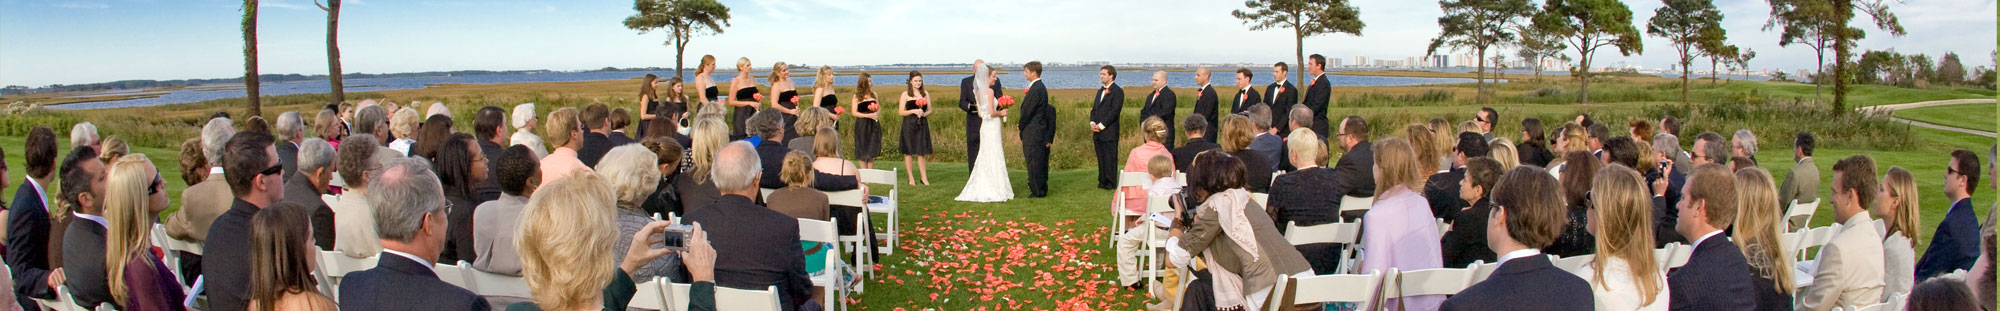 Lighthouse Sound Waterfront Wedding in Ocean City, MD.